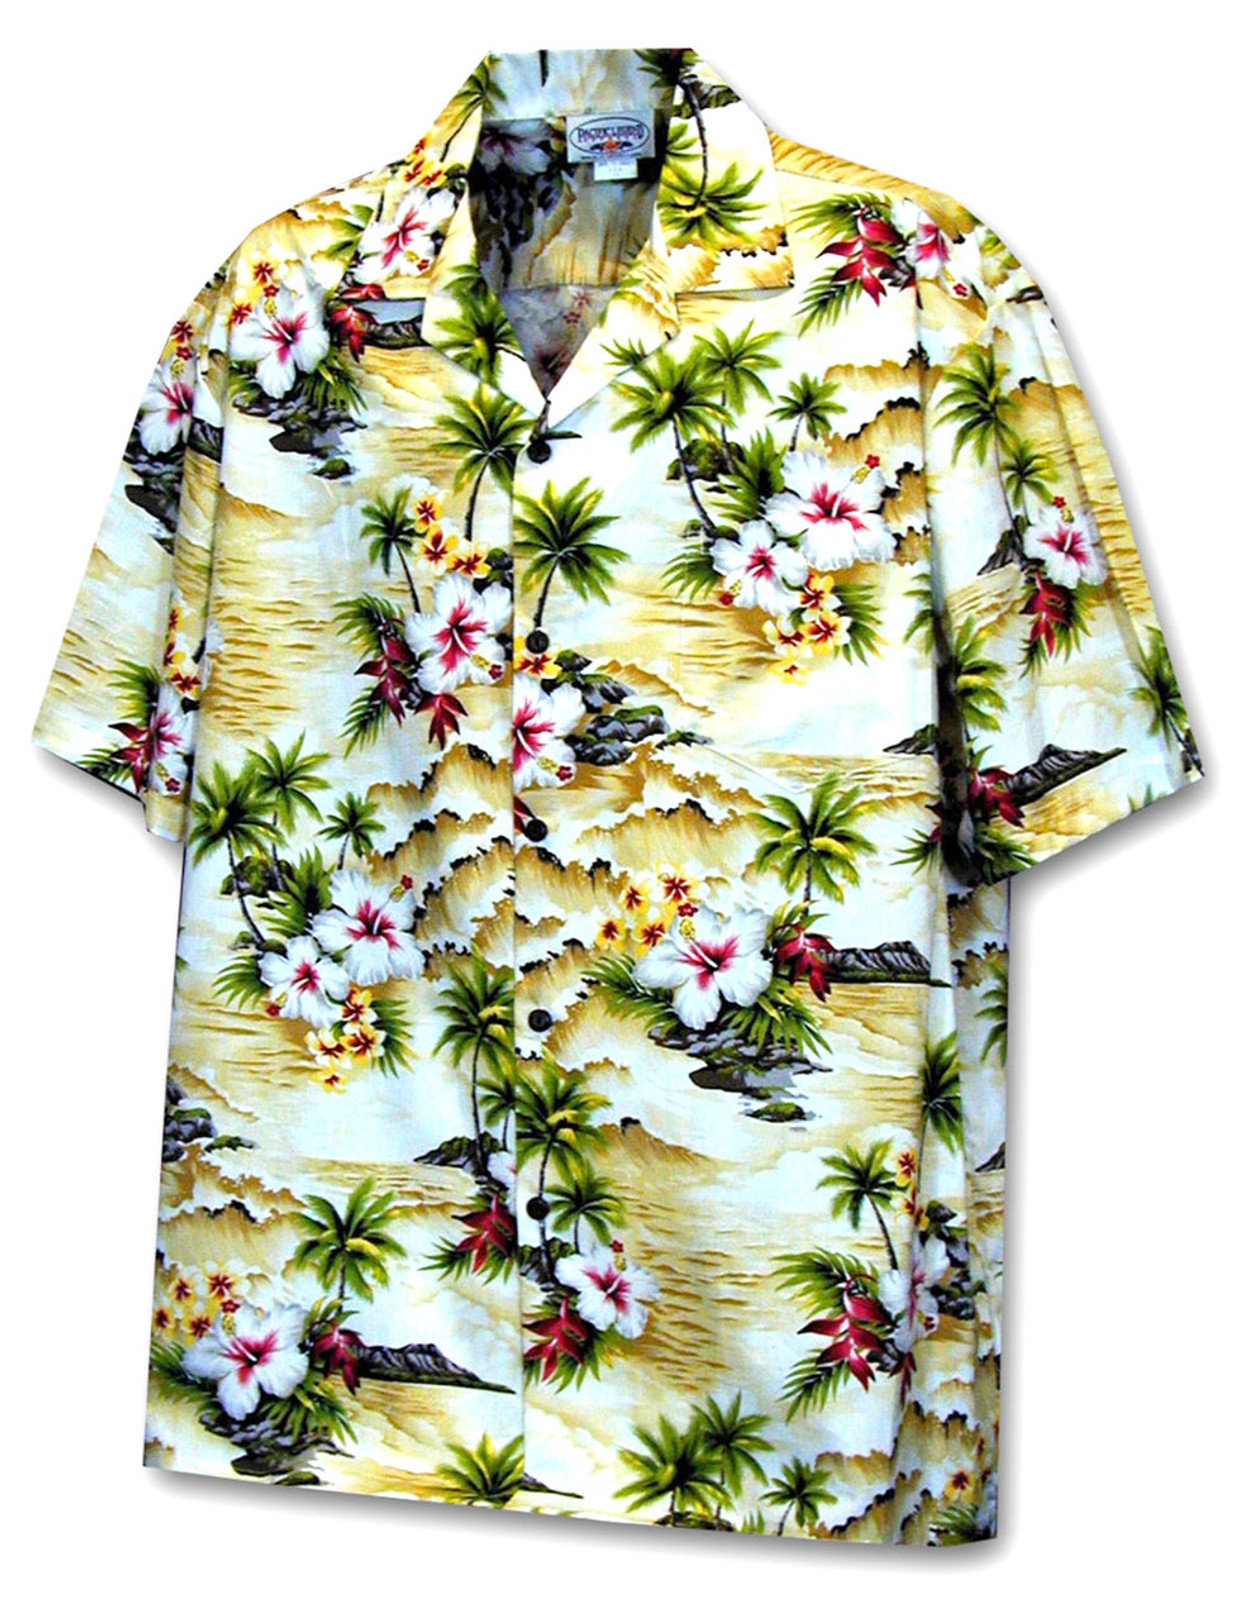 63e5d22990d Hookipa Hibiscus Flower Hawaiian Men's Shirt 100% Cotton Fabric Coconut  shell buttons Matching left pocket